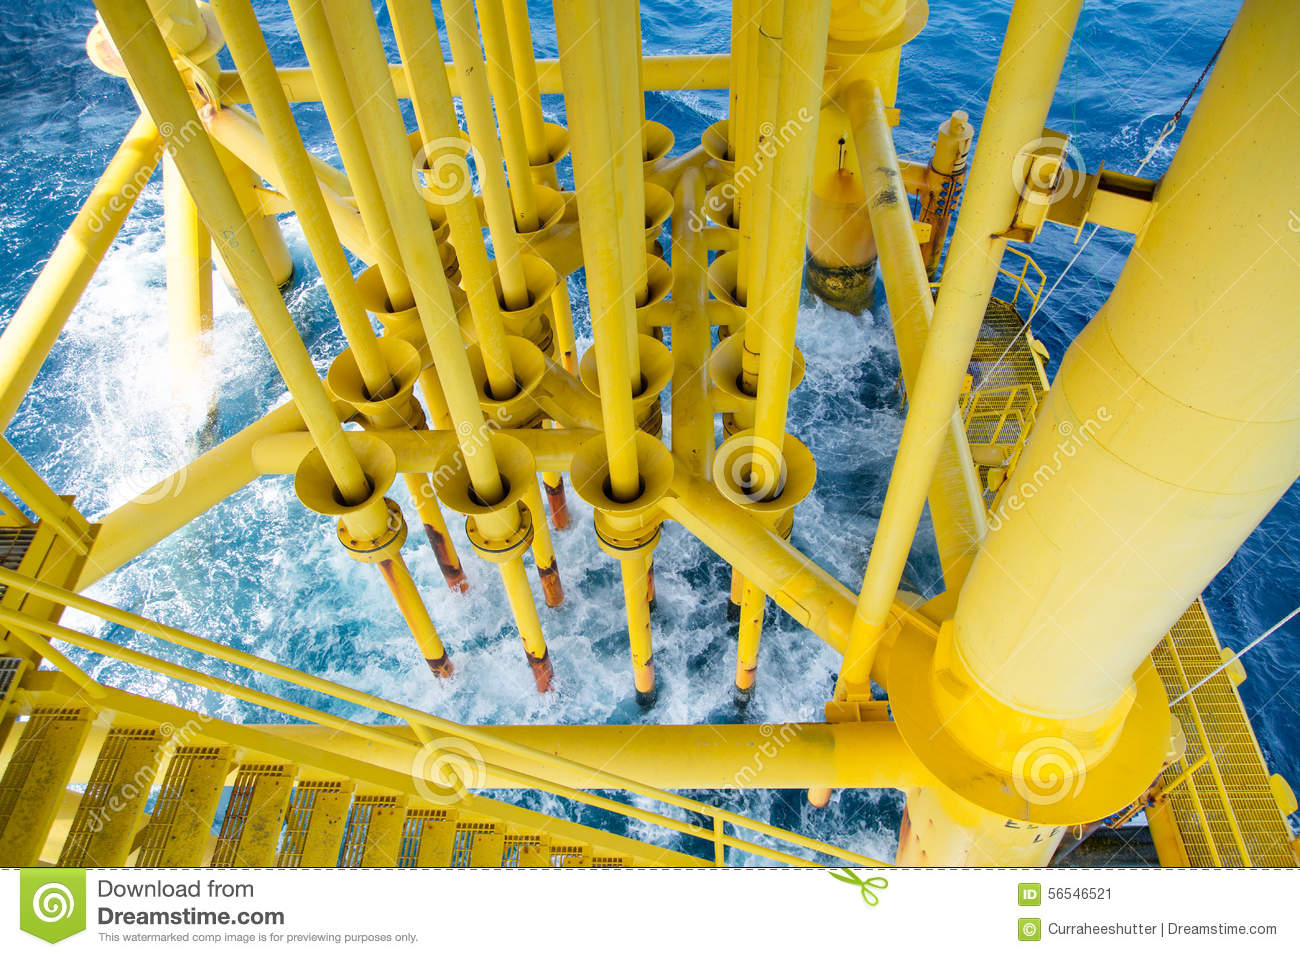 Stock Photo Oil Gas Producing Slots Offshore Platform Oil Gas Industry Well Head Slot Platform Rig Production Image56546521 also Mst Ptr 05 besides Babic  ponents Of Hydraulic Pneumatic Systems additionally Drill Press Dp 1500vs 1 furthermore Hor 20mc 20central 20origin. on drilling machine diagram